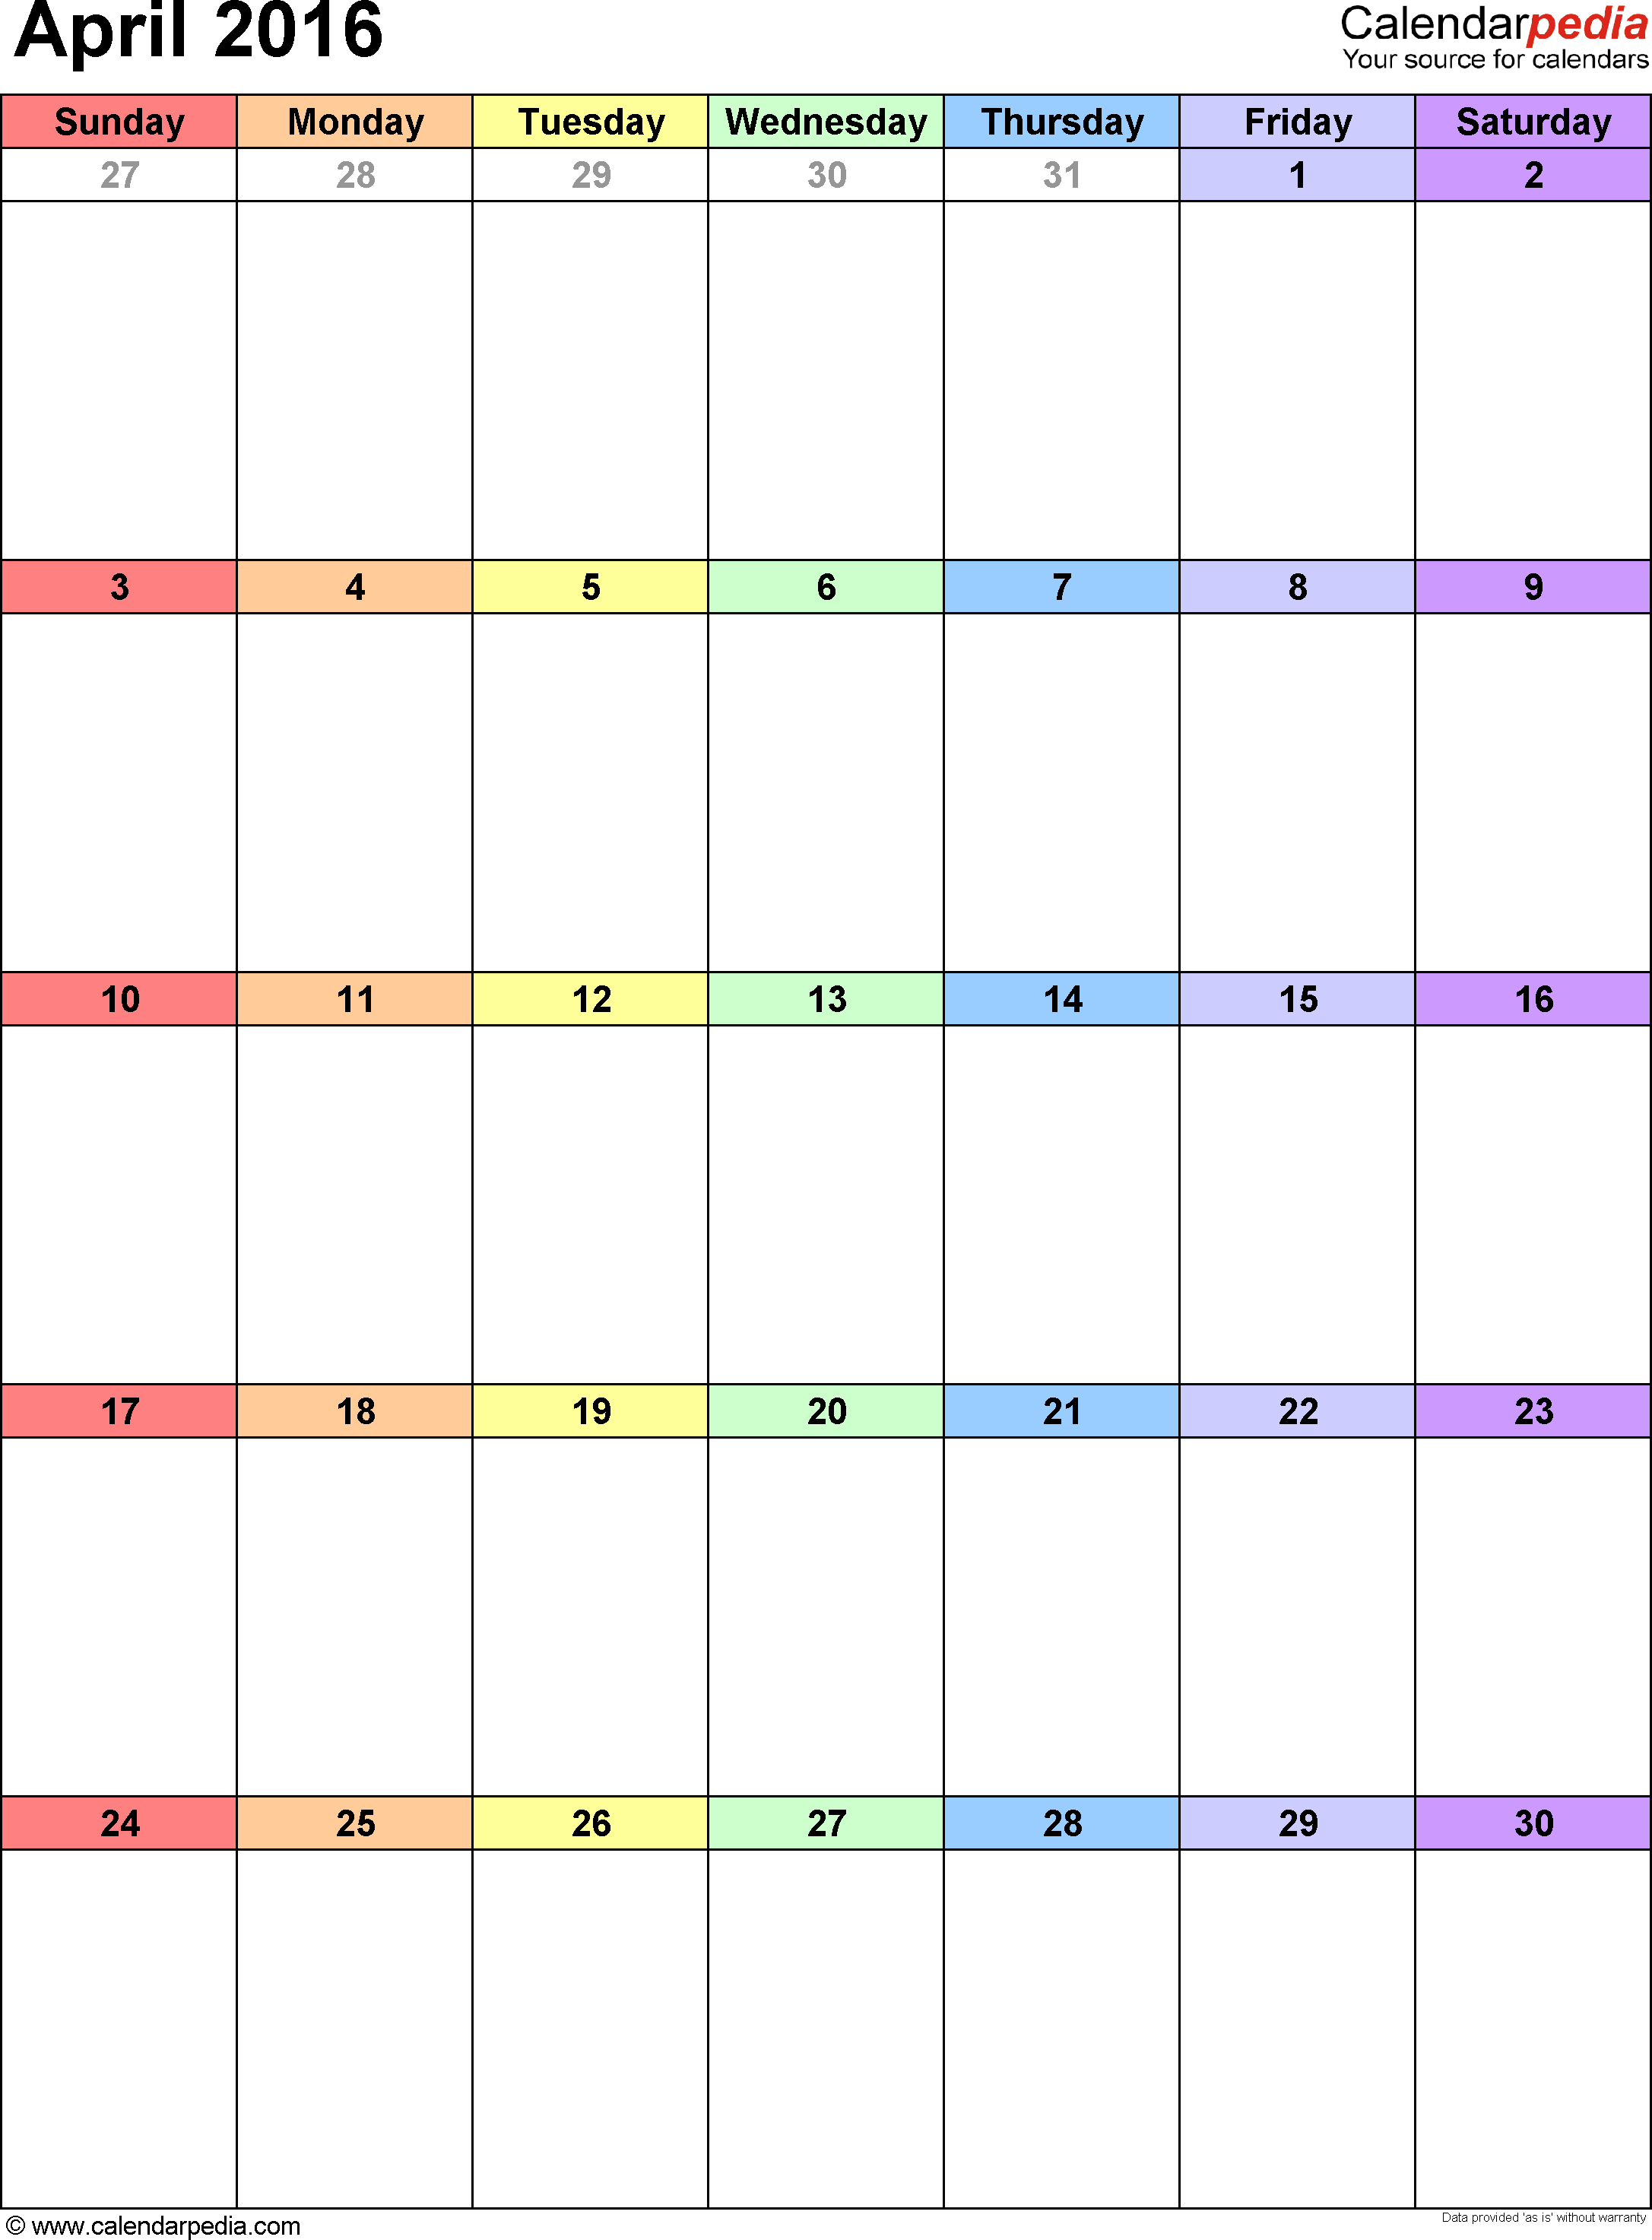 April 2016 calendar as printable Word, Excel & PDF templates